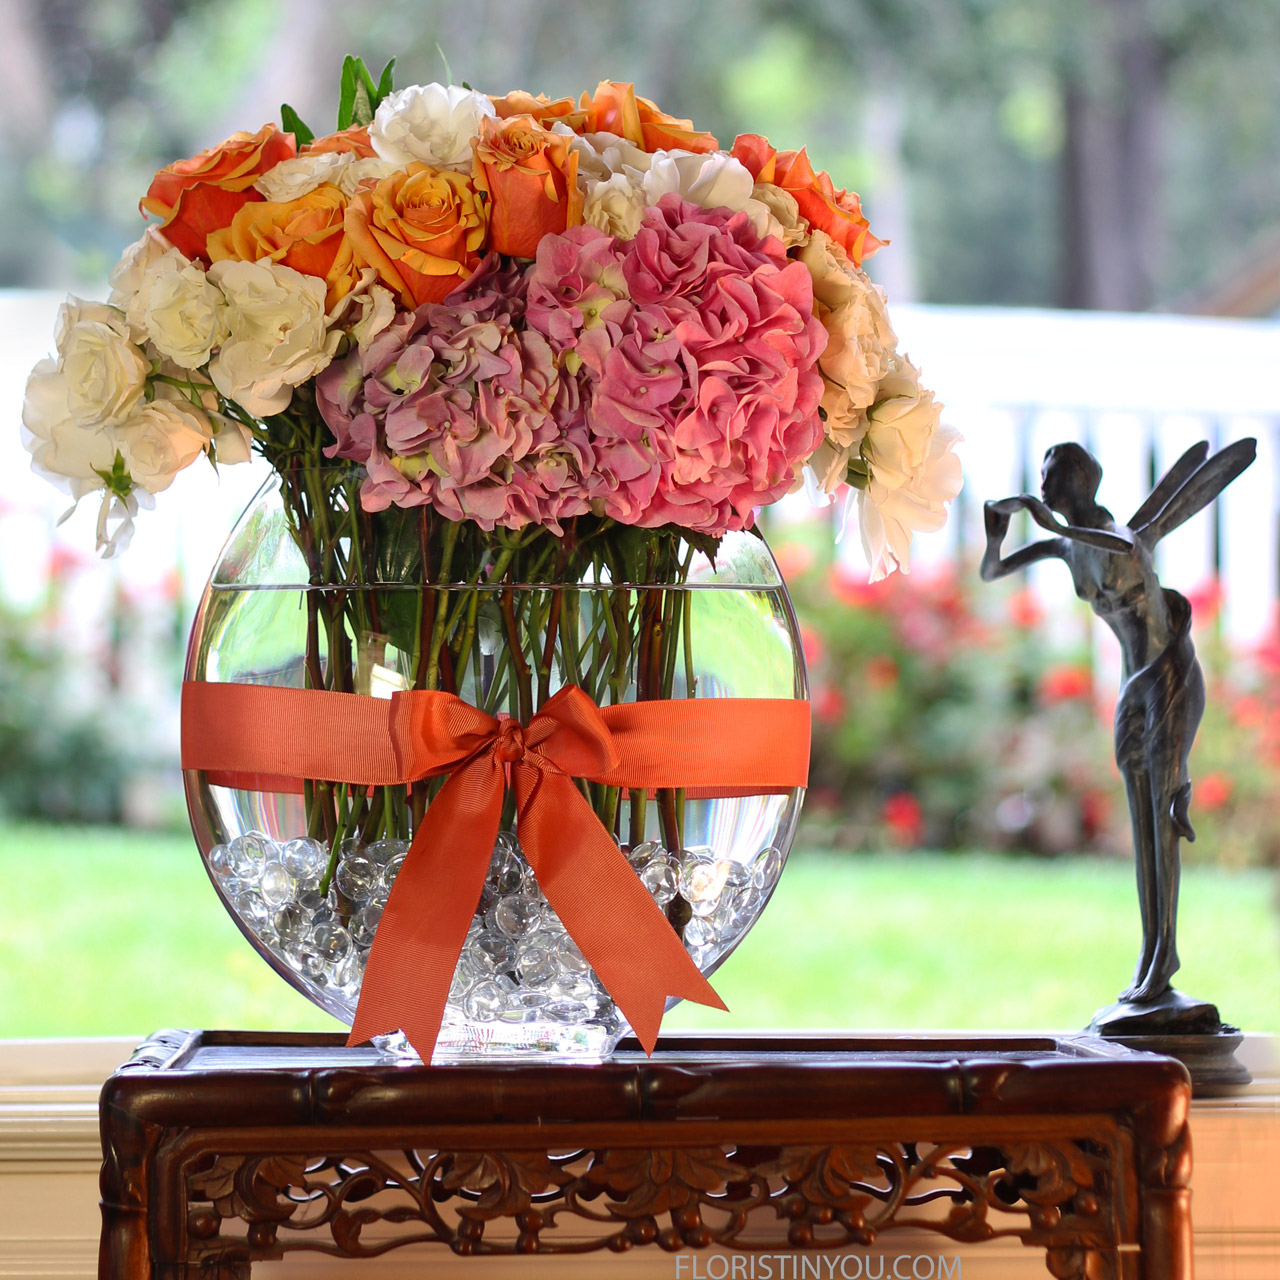 """Roses and Hydrangeas                     Normal   0           false   false   false     EN-US   JA   X-NONE                                                                                                                                                                                                                                                                                                                                                                              /* Style Definitions */ table.MsoNormalTable {mso-style-name:""""Table Normal""""; mso-tstyle-rowband-size:0; mso-tstyle-colband-size:0; mso-style-noshow:yes; mso-style-priority:99; mso-style-parent:""""""""; mso-padding-alt:0in 5.4pt 0in 5.4pt; mso-para-margin:0in; mso-para-margin-bottom:.0001pt; mso-pagination:widow-orphan; font-size:12.0pt; font-family:Cambria; mso-ascii-font-family:Cambria; mso-ascii-theme-font:minor-latin; mso-hansi-font-family:Cambria; mso-hansi-theme-font:minor-latin;}"""